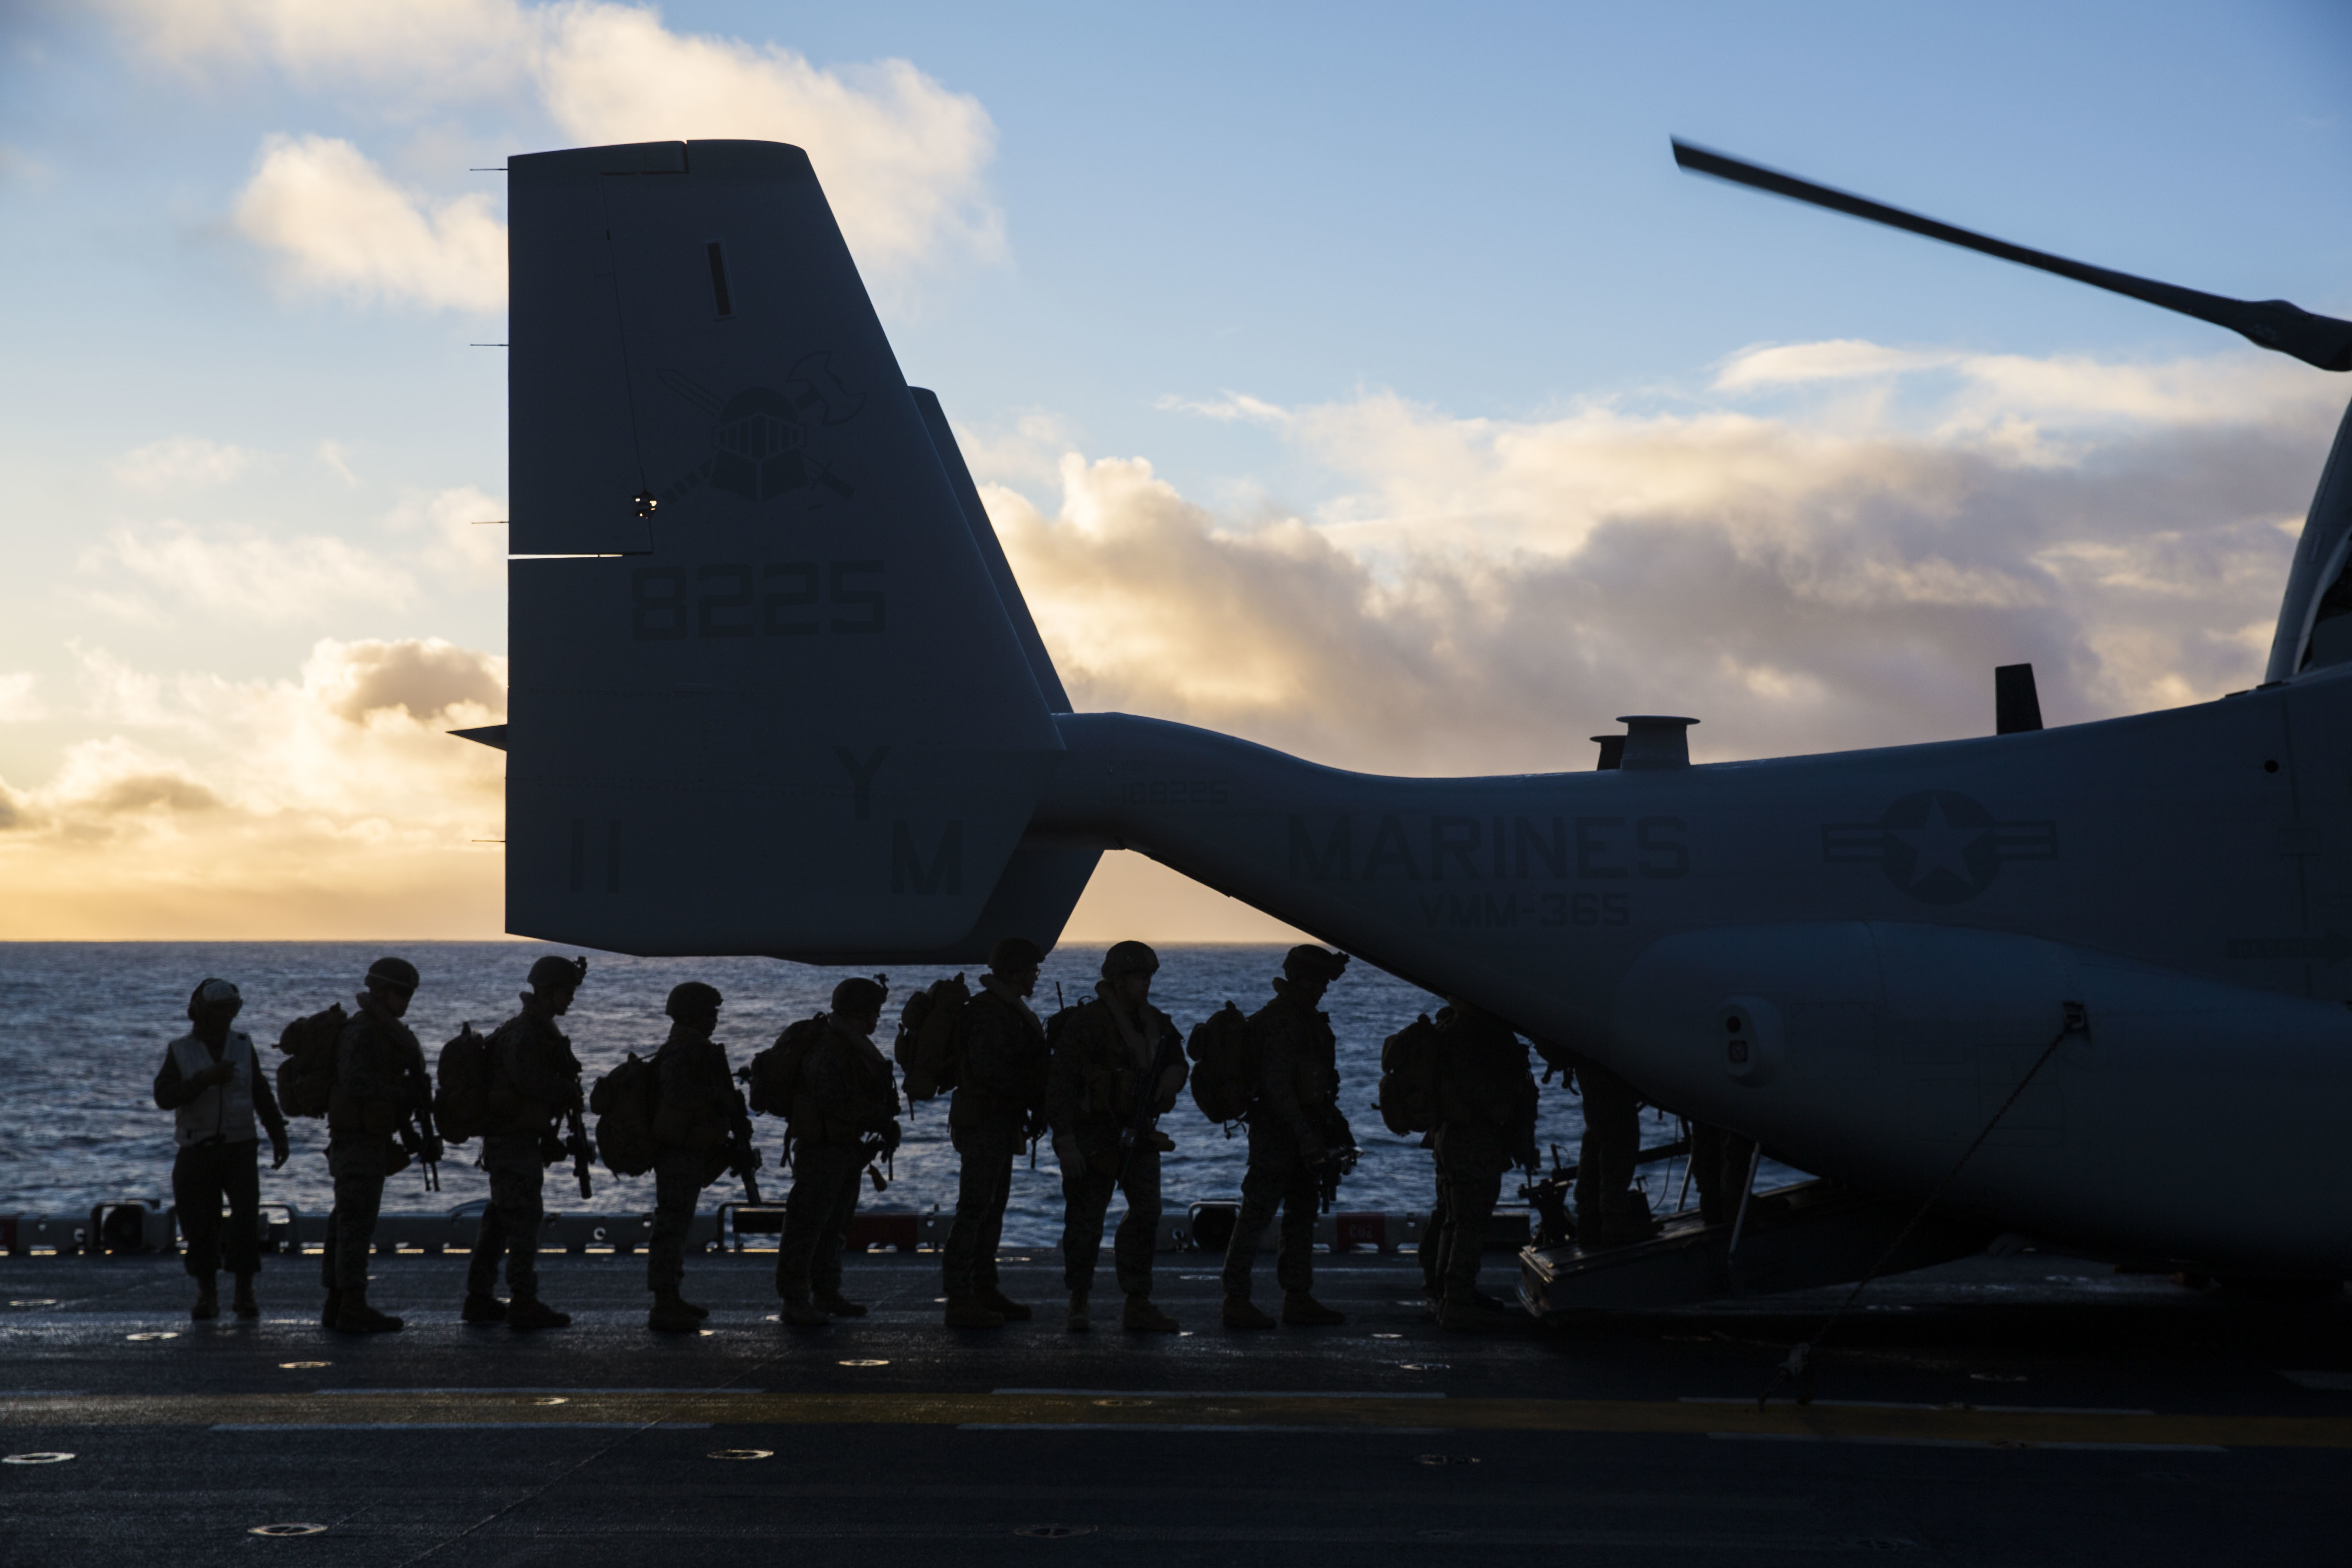 Marines with 2nd Battalion, 2nd Marine Regiment, load onto a CH-53E Sea Stallion aboard USS Iwo Jima (LHD 7) while conducting an air assault in Icelandic terrain Oct. 17. Iceland's unique terrain and climate allows for Marines to be better prepared and rapidly deploy in support of NATO Allies and partners. (U.S. Marine Corps photo by Lance Cpl. Margaret Gale)